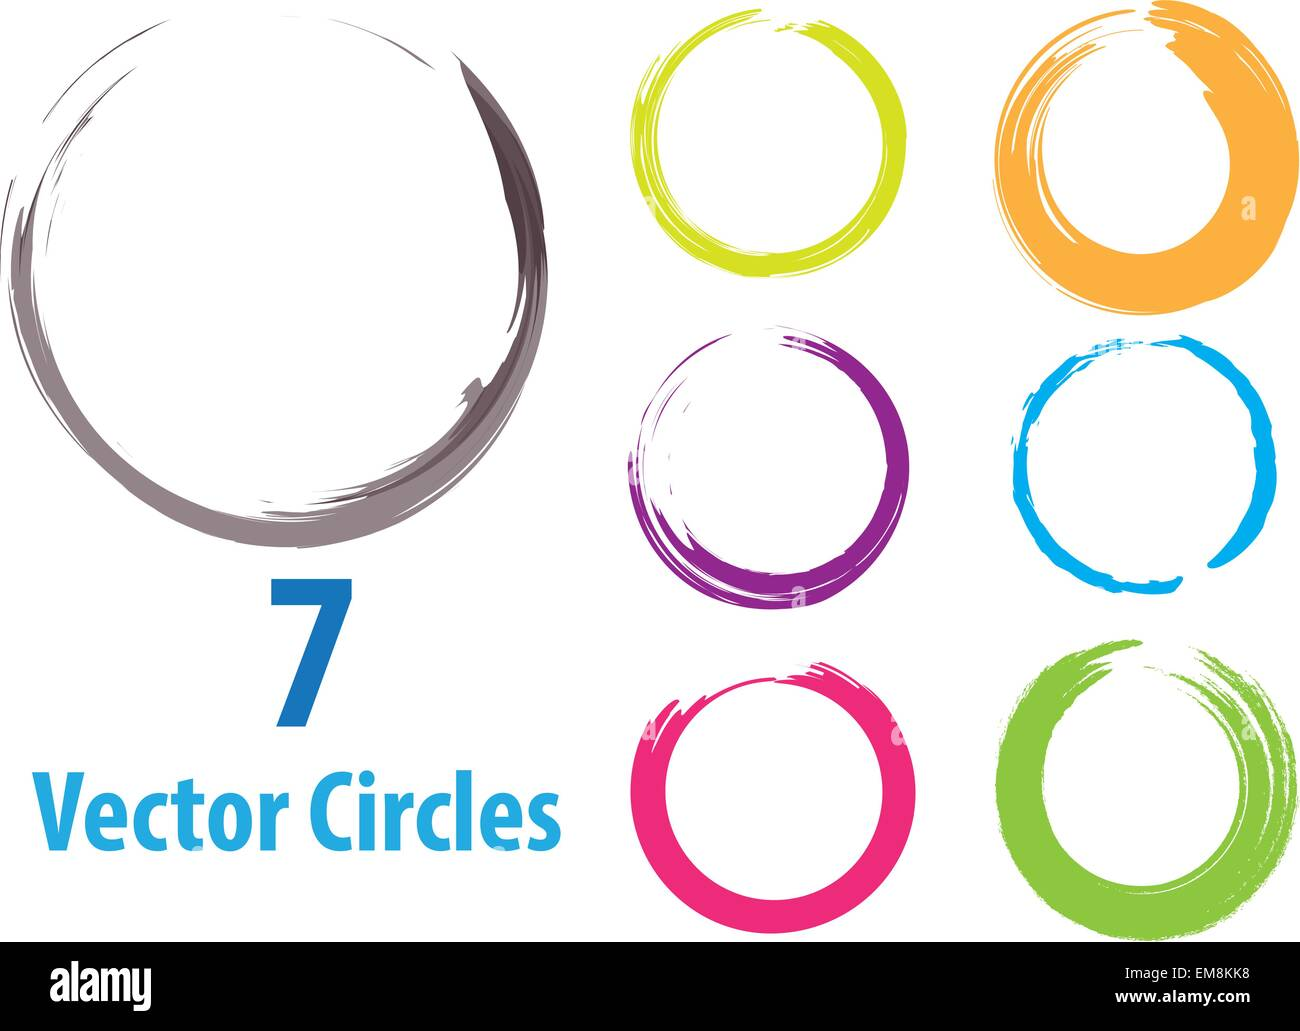 vector circles - Stock Vector